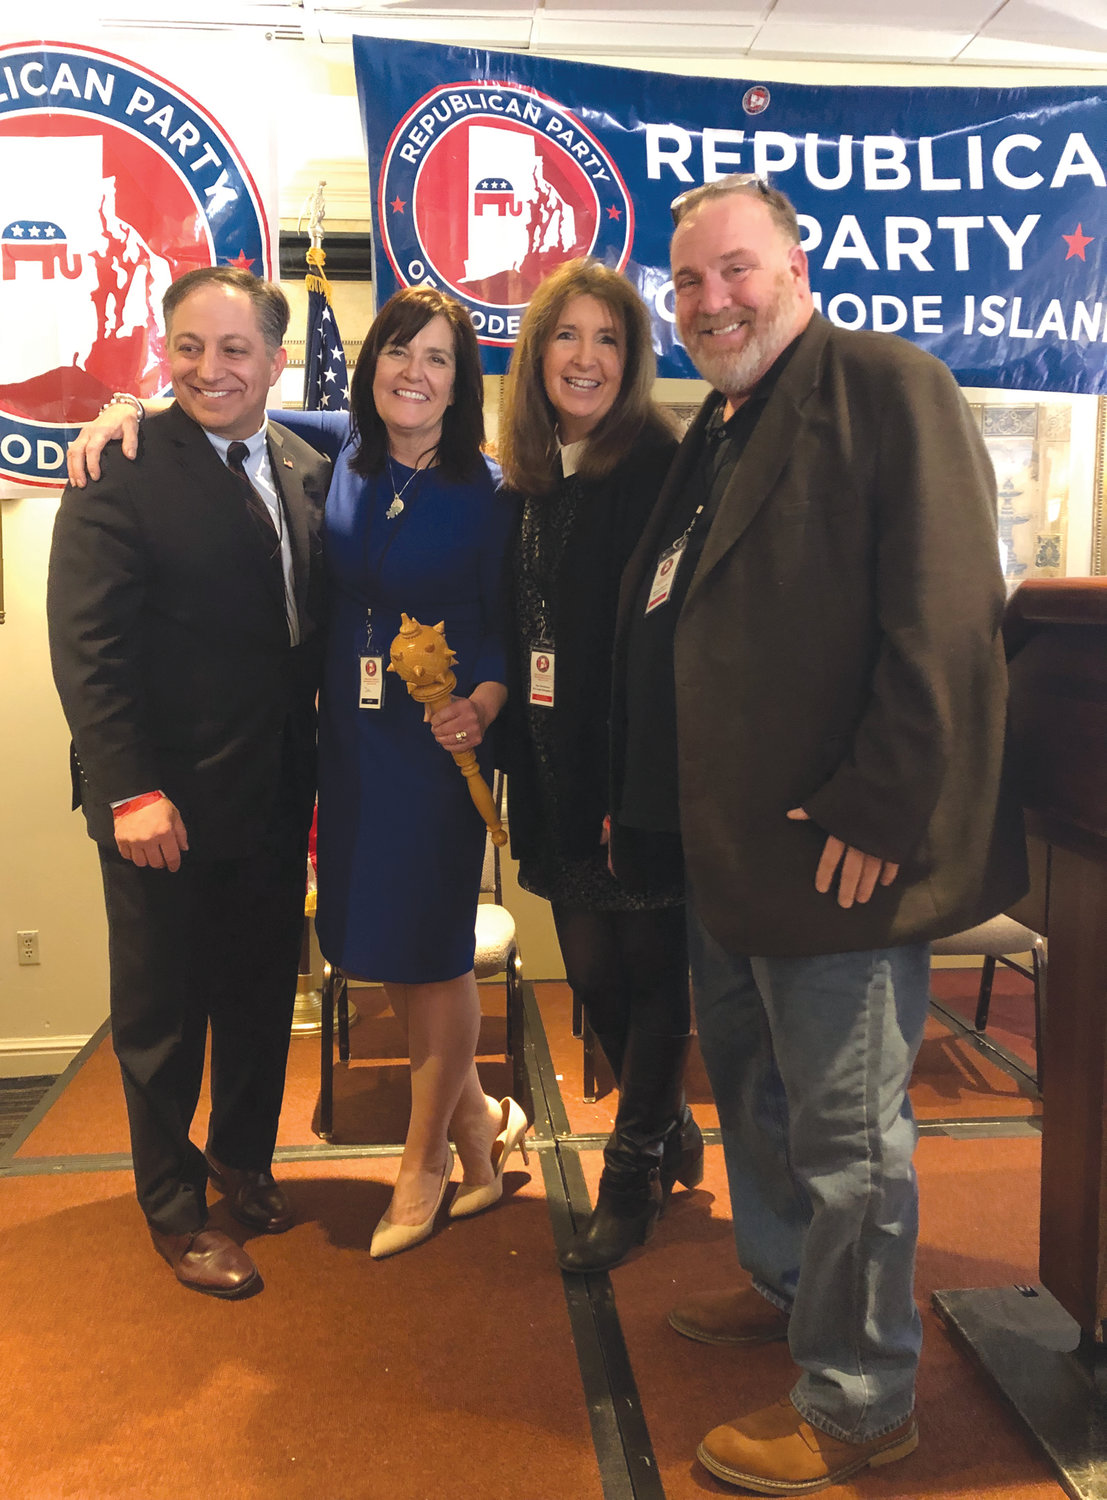 IN WITH THE NEW: From left to right, former R.I. GOP Chair Brandon Bell, new R.I. GOP Chair Sue Cienki, former Republican candidate for Mayor of Warwick Sue Stenhouse and Warwick GOP Chairman Rick Cascella posed for a photo just following adjournment Saturday.